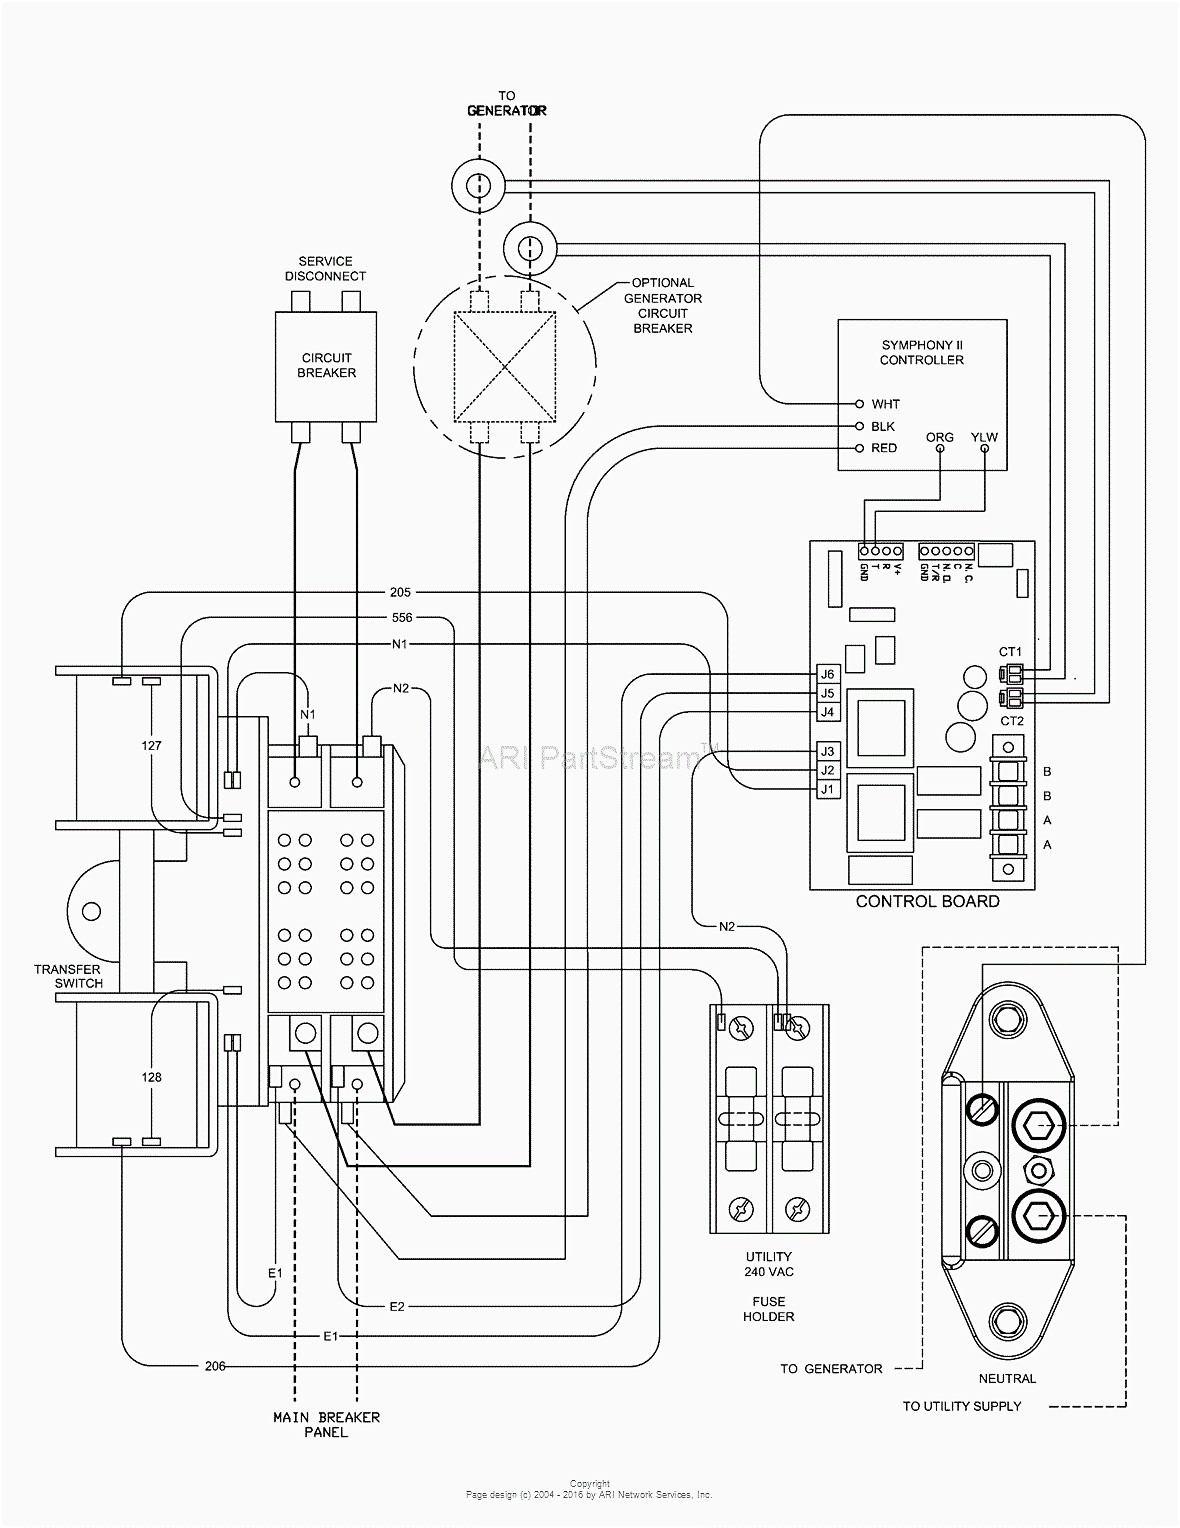 Generac Rts Transfer Switch Wiring Diagram Download Collection Main Lug Panel Generator Automatic With